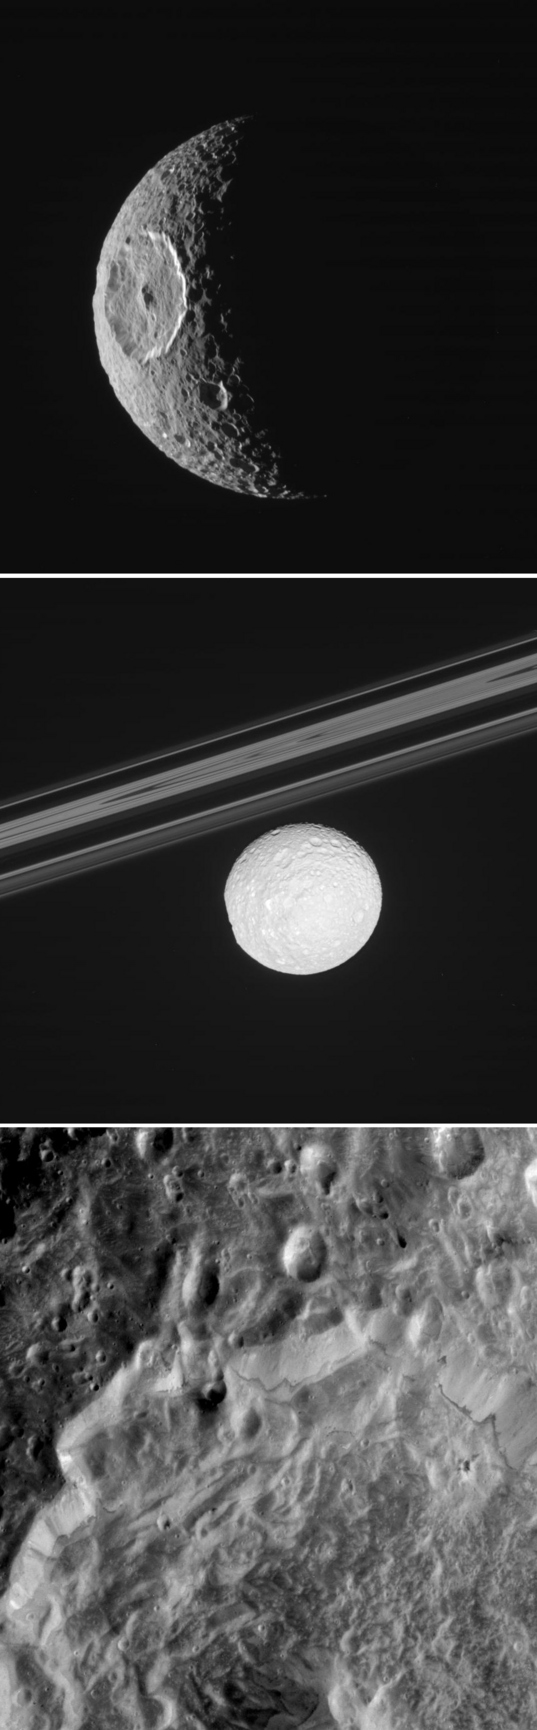 Cassini views of Mimas